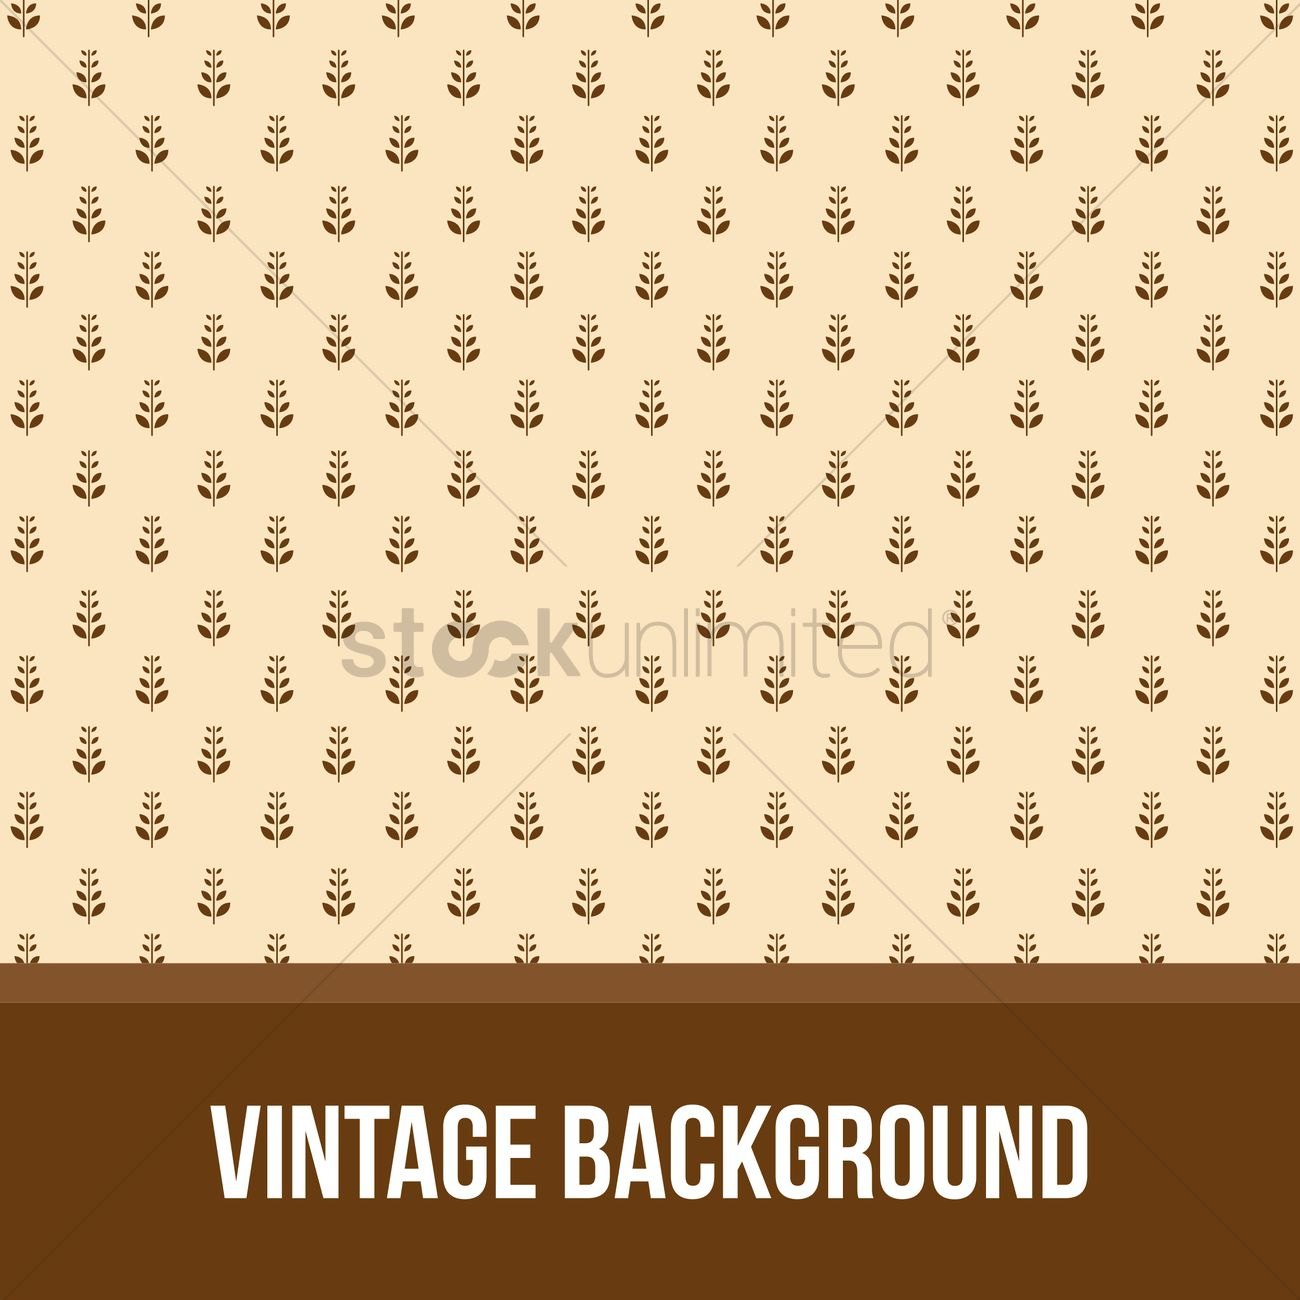 Abstract Vintage Floral Background Vector Image 1294140